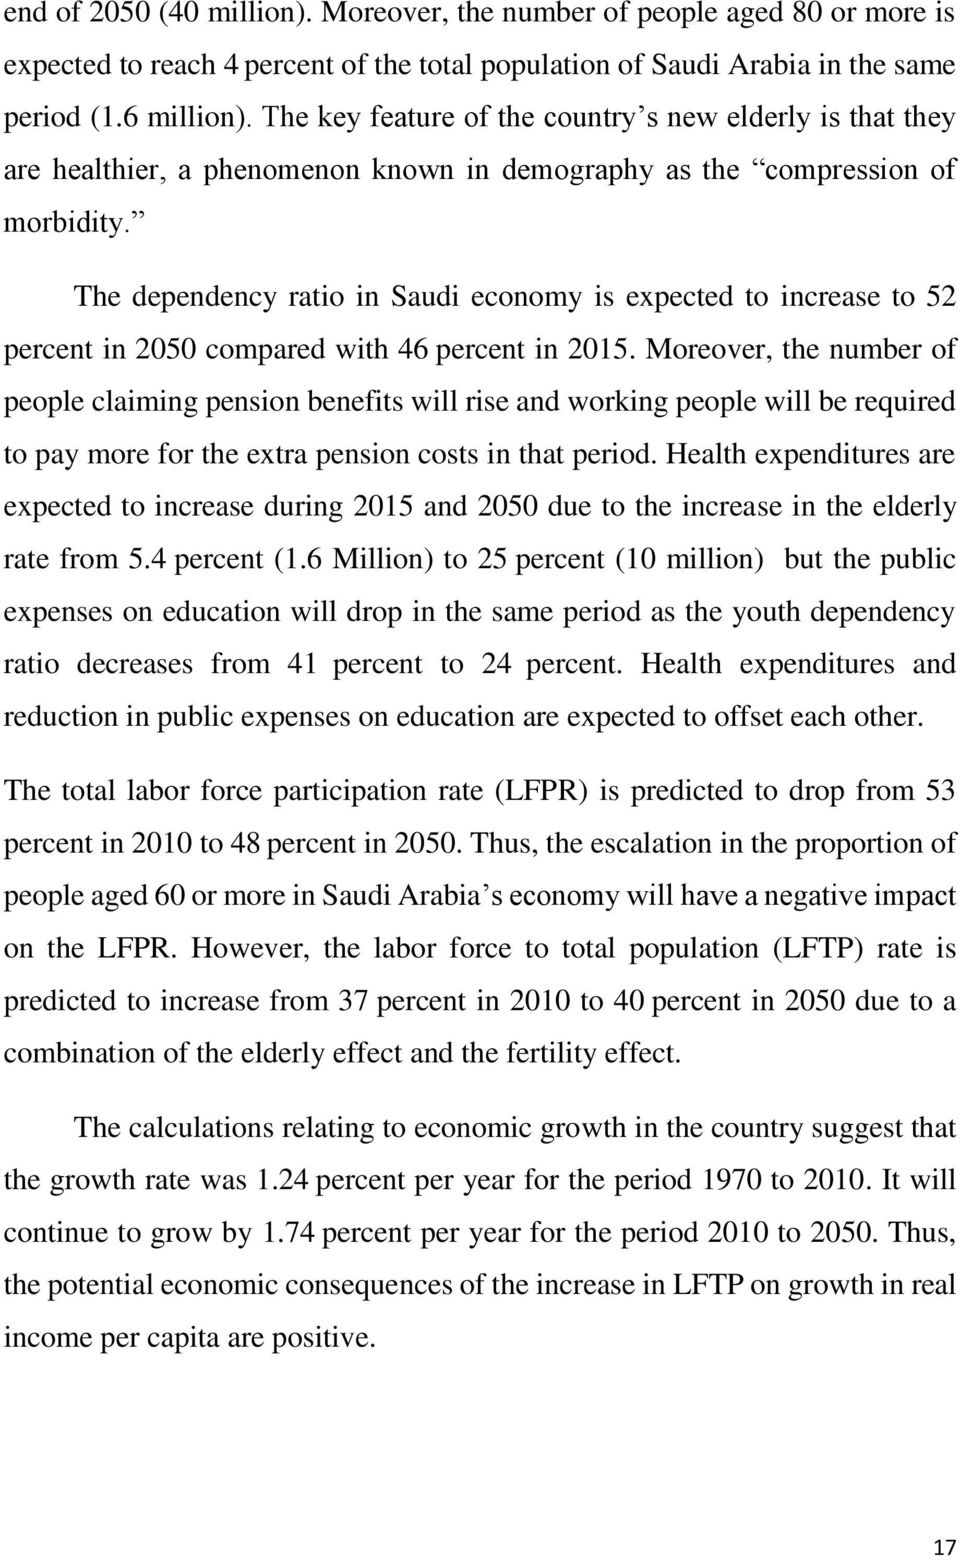 The dependency ratio in Saudi economy is expected to increase to 52 percent in 2050 compared with 46 percent in 2015.